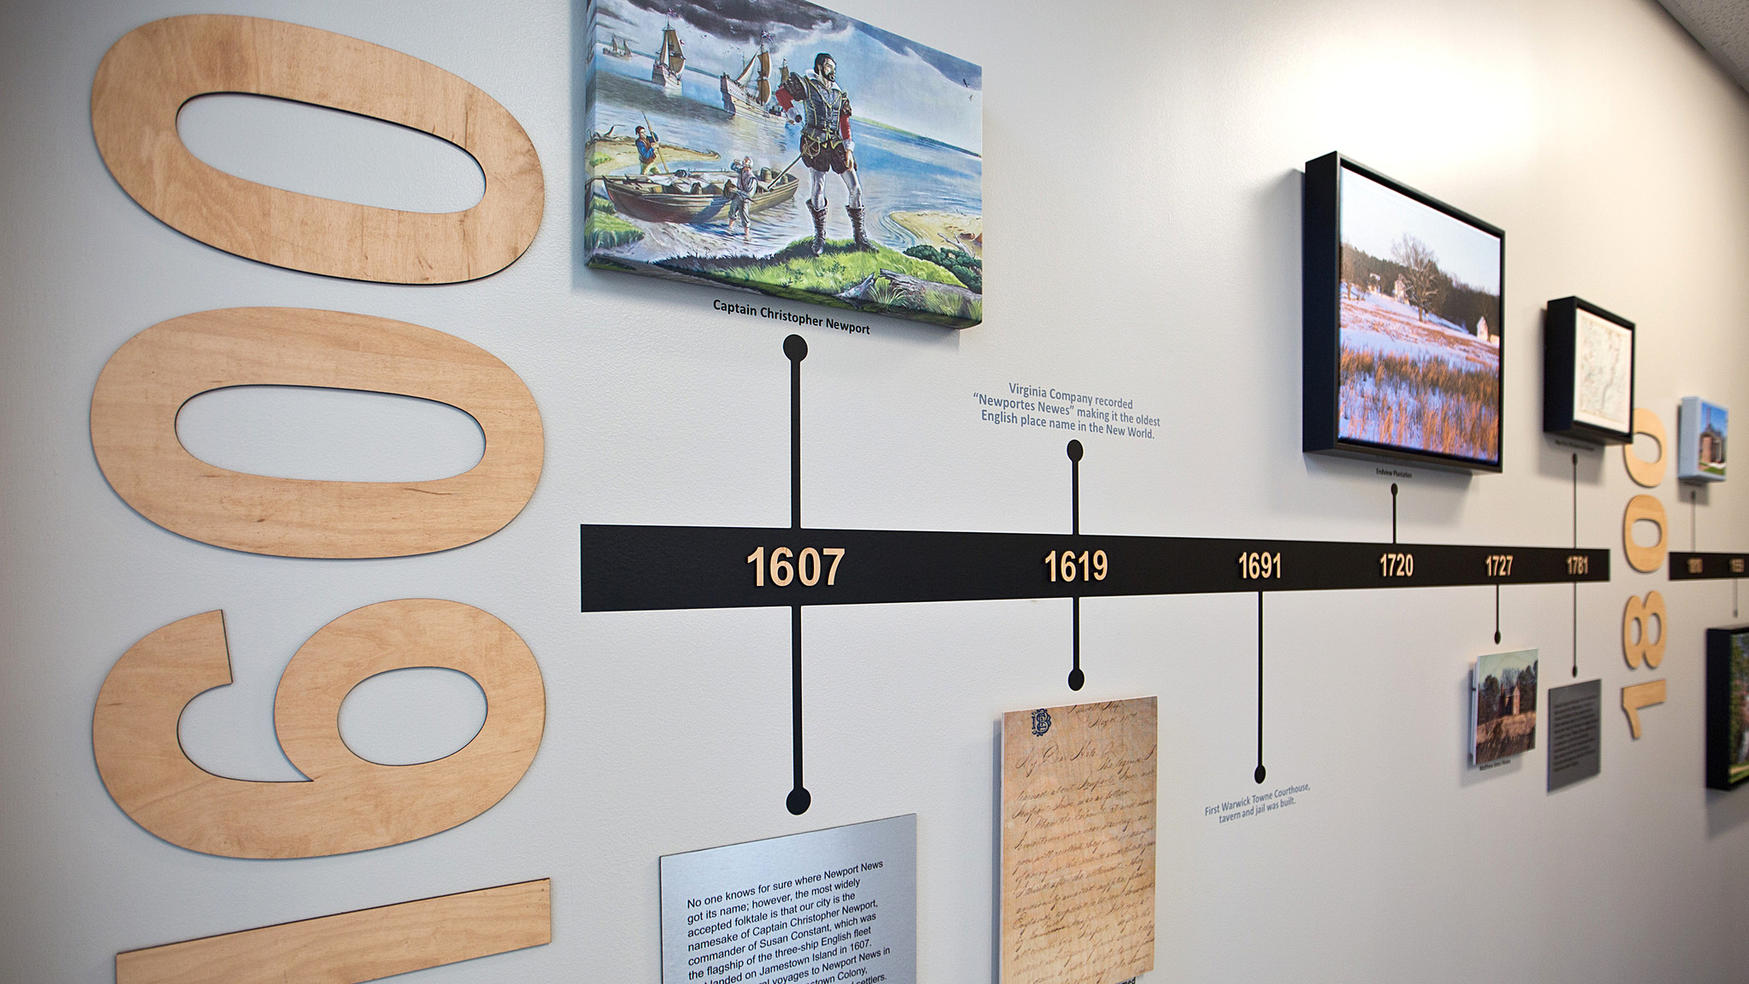 Newport News Tourism Office, wall timeline of the city's history